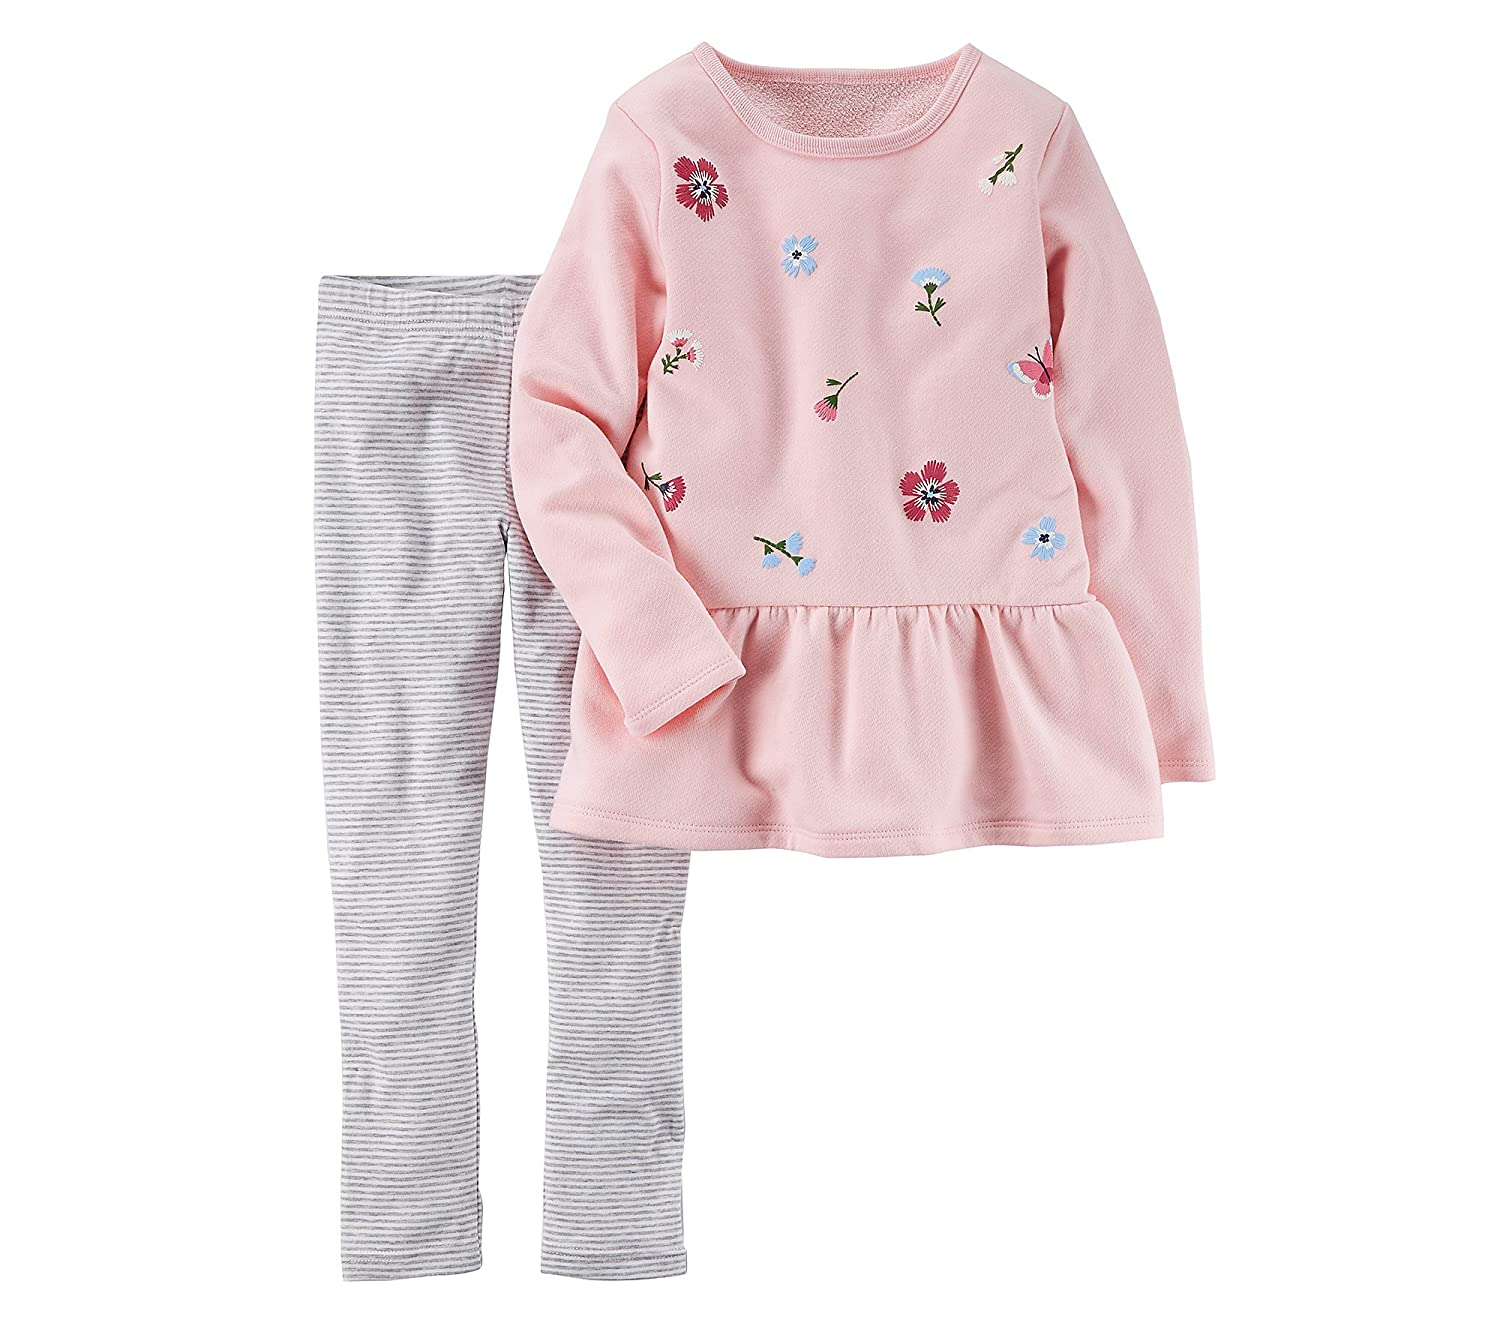 Carters Girls 4-8 2 Piece Embroidered Peplum Top and Leggings Set